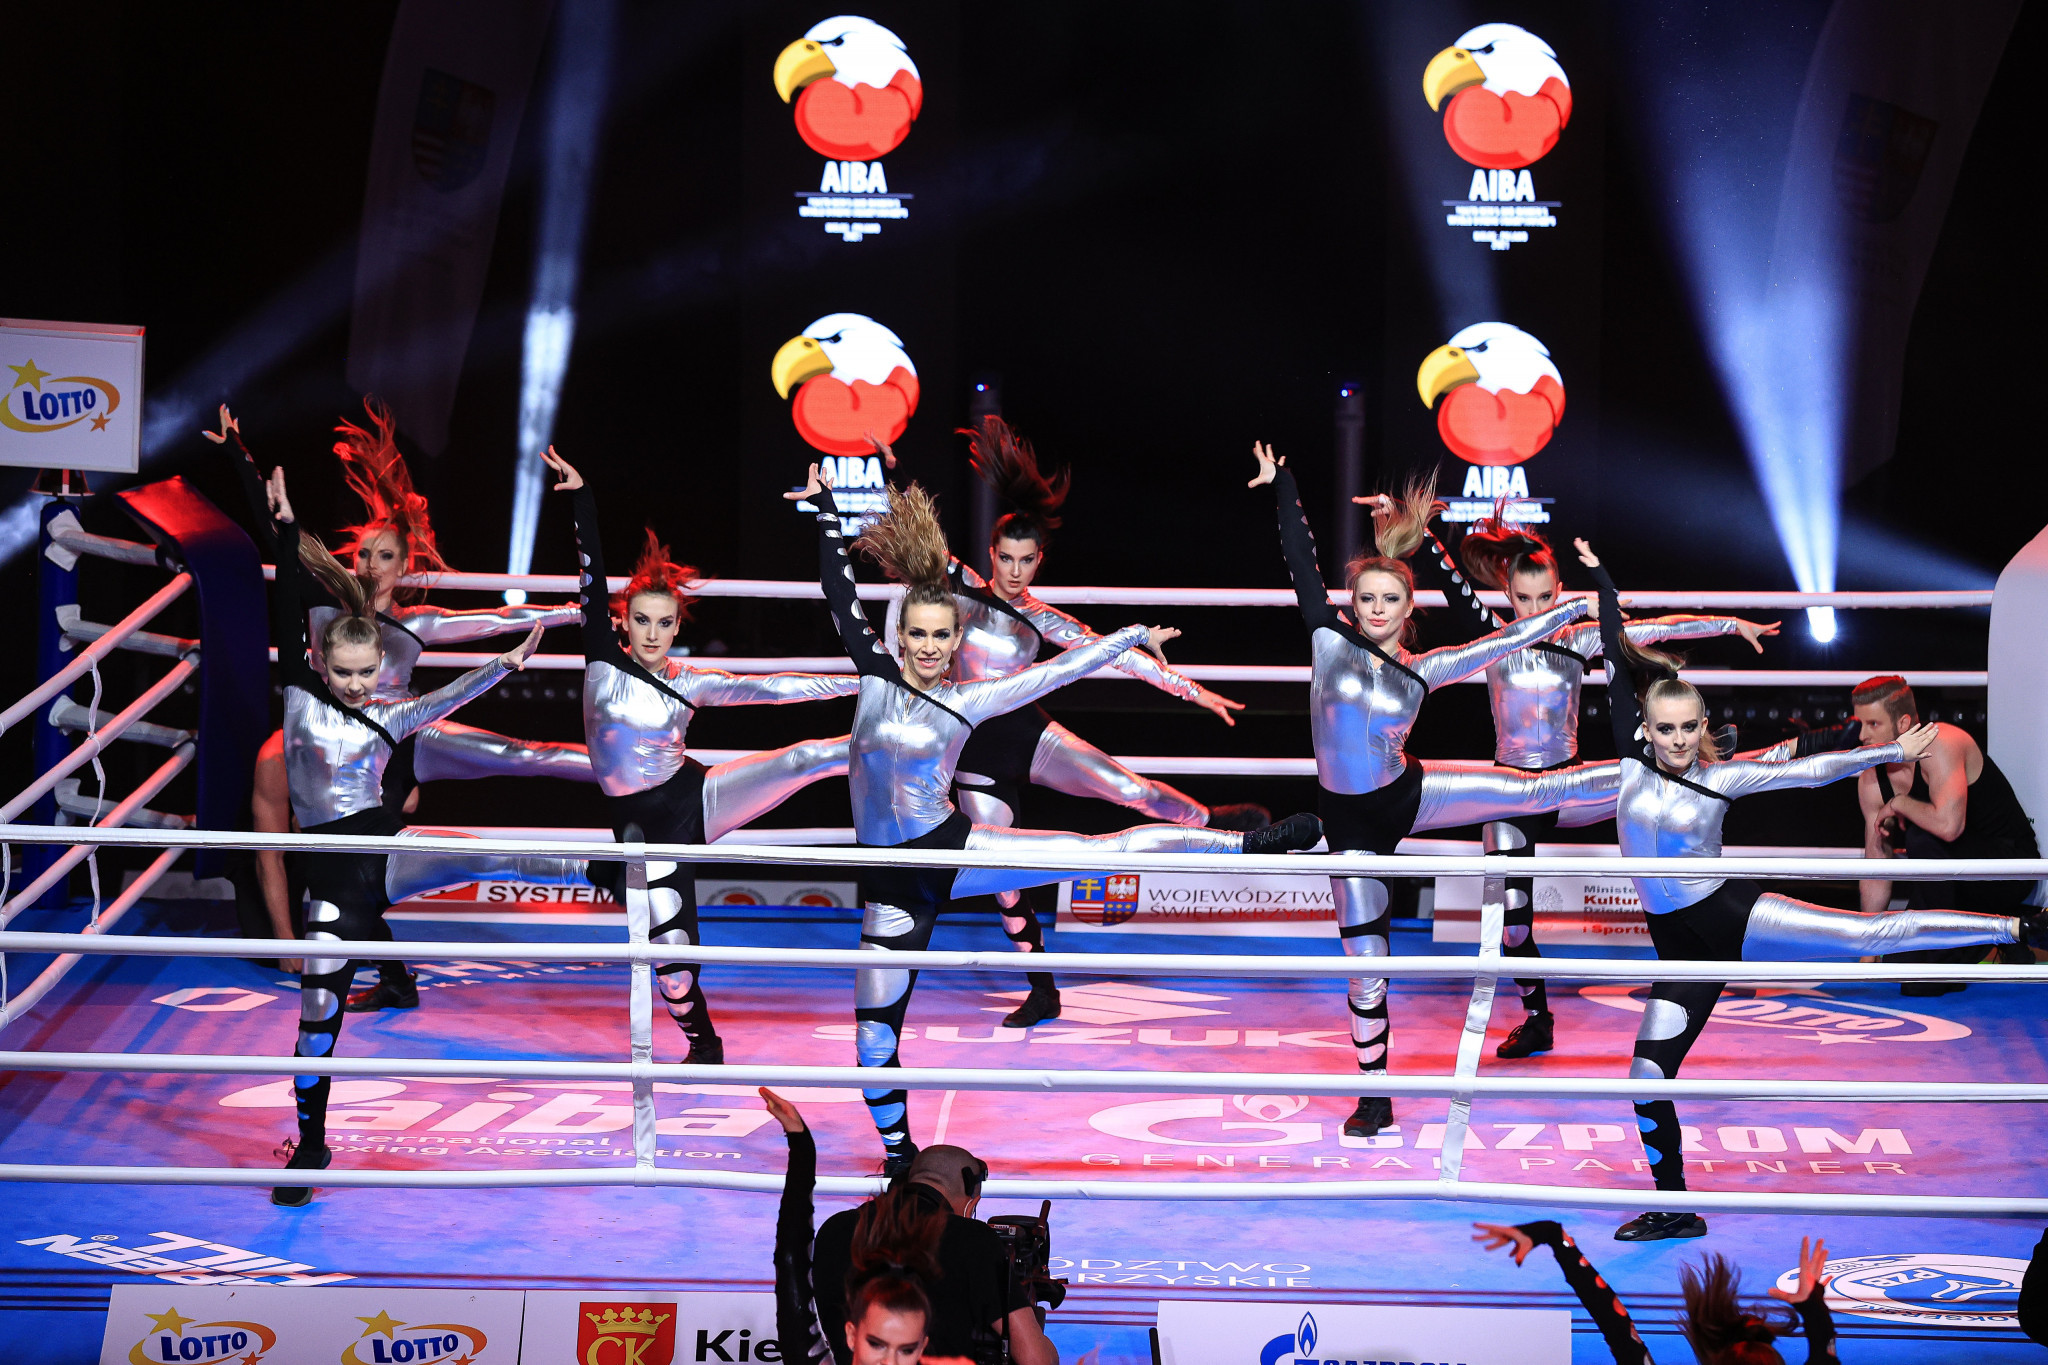 A dance display took place in the ring before the fights took place in Kielce ©AIBA